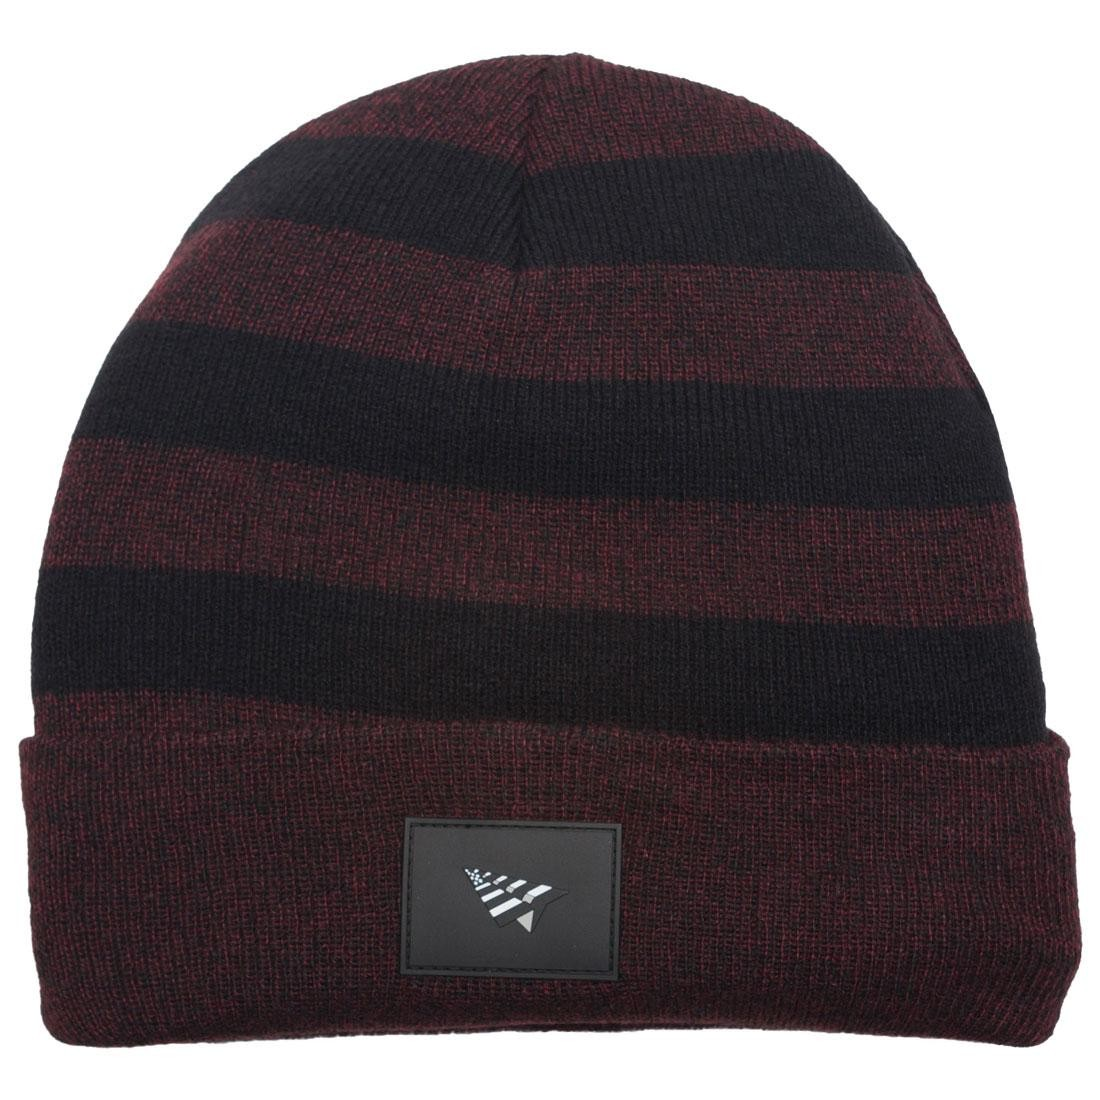 Paper Planes Patch Skully Beanie (burgundy / port royale)